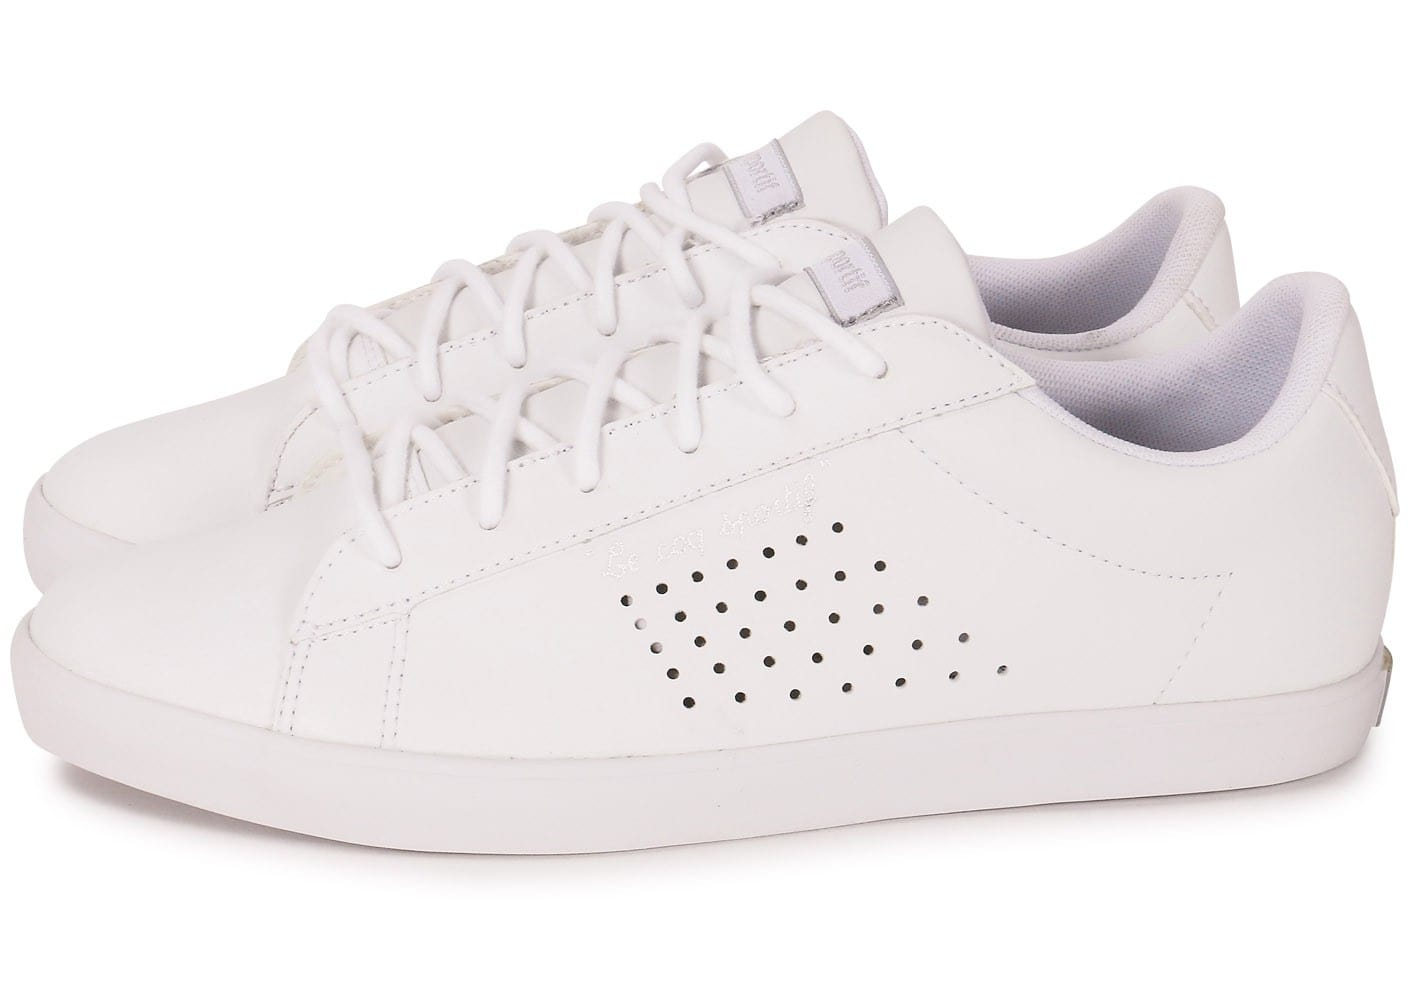 Chaussures Le Coq sportif blanches Sportives homme Geox Chaussures D AVERY C - SCAM. Geox soldes ffLpsBec